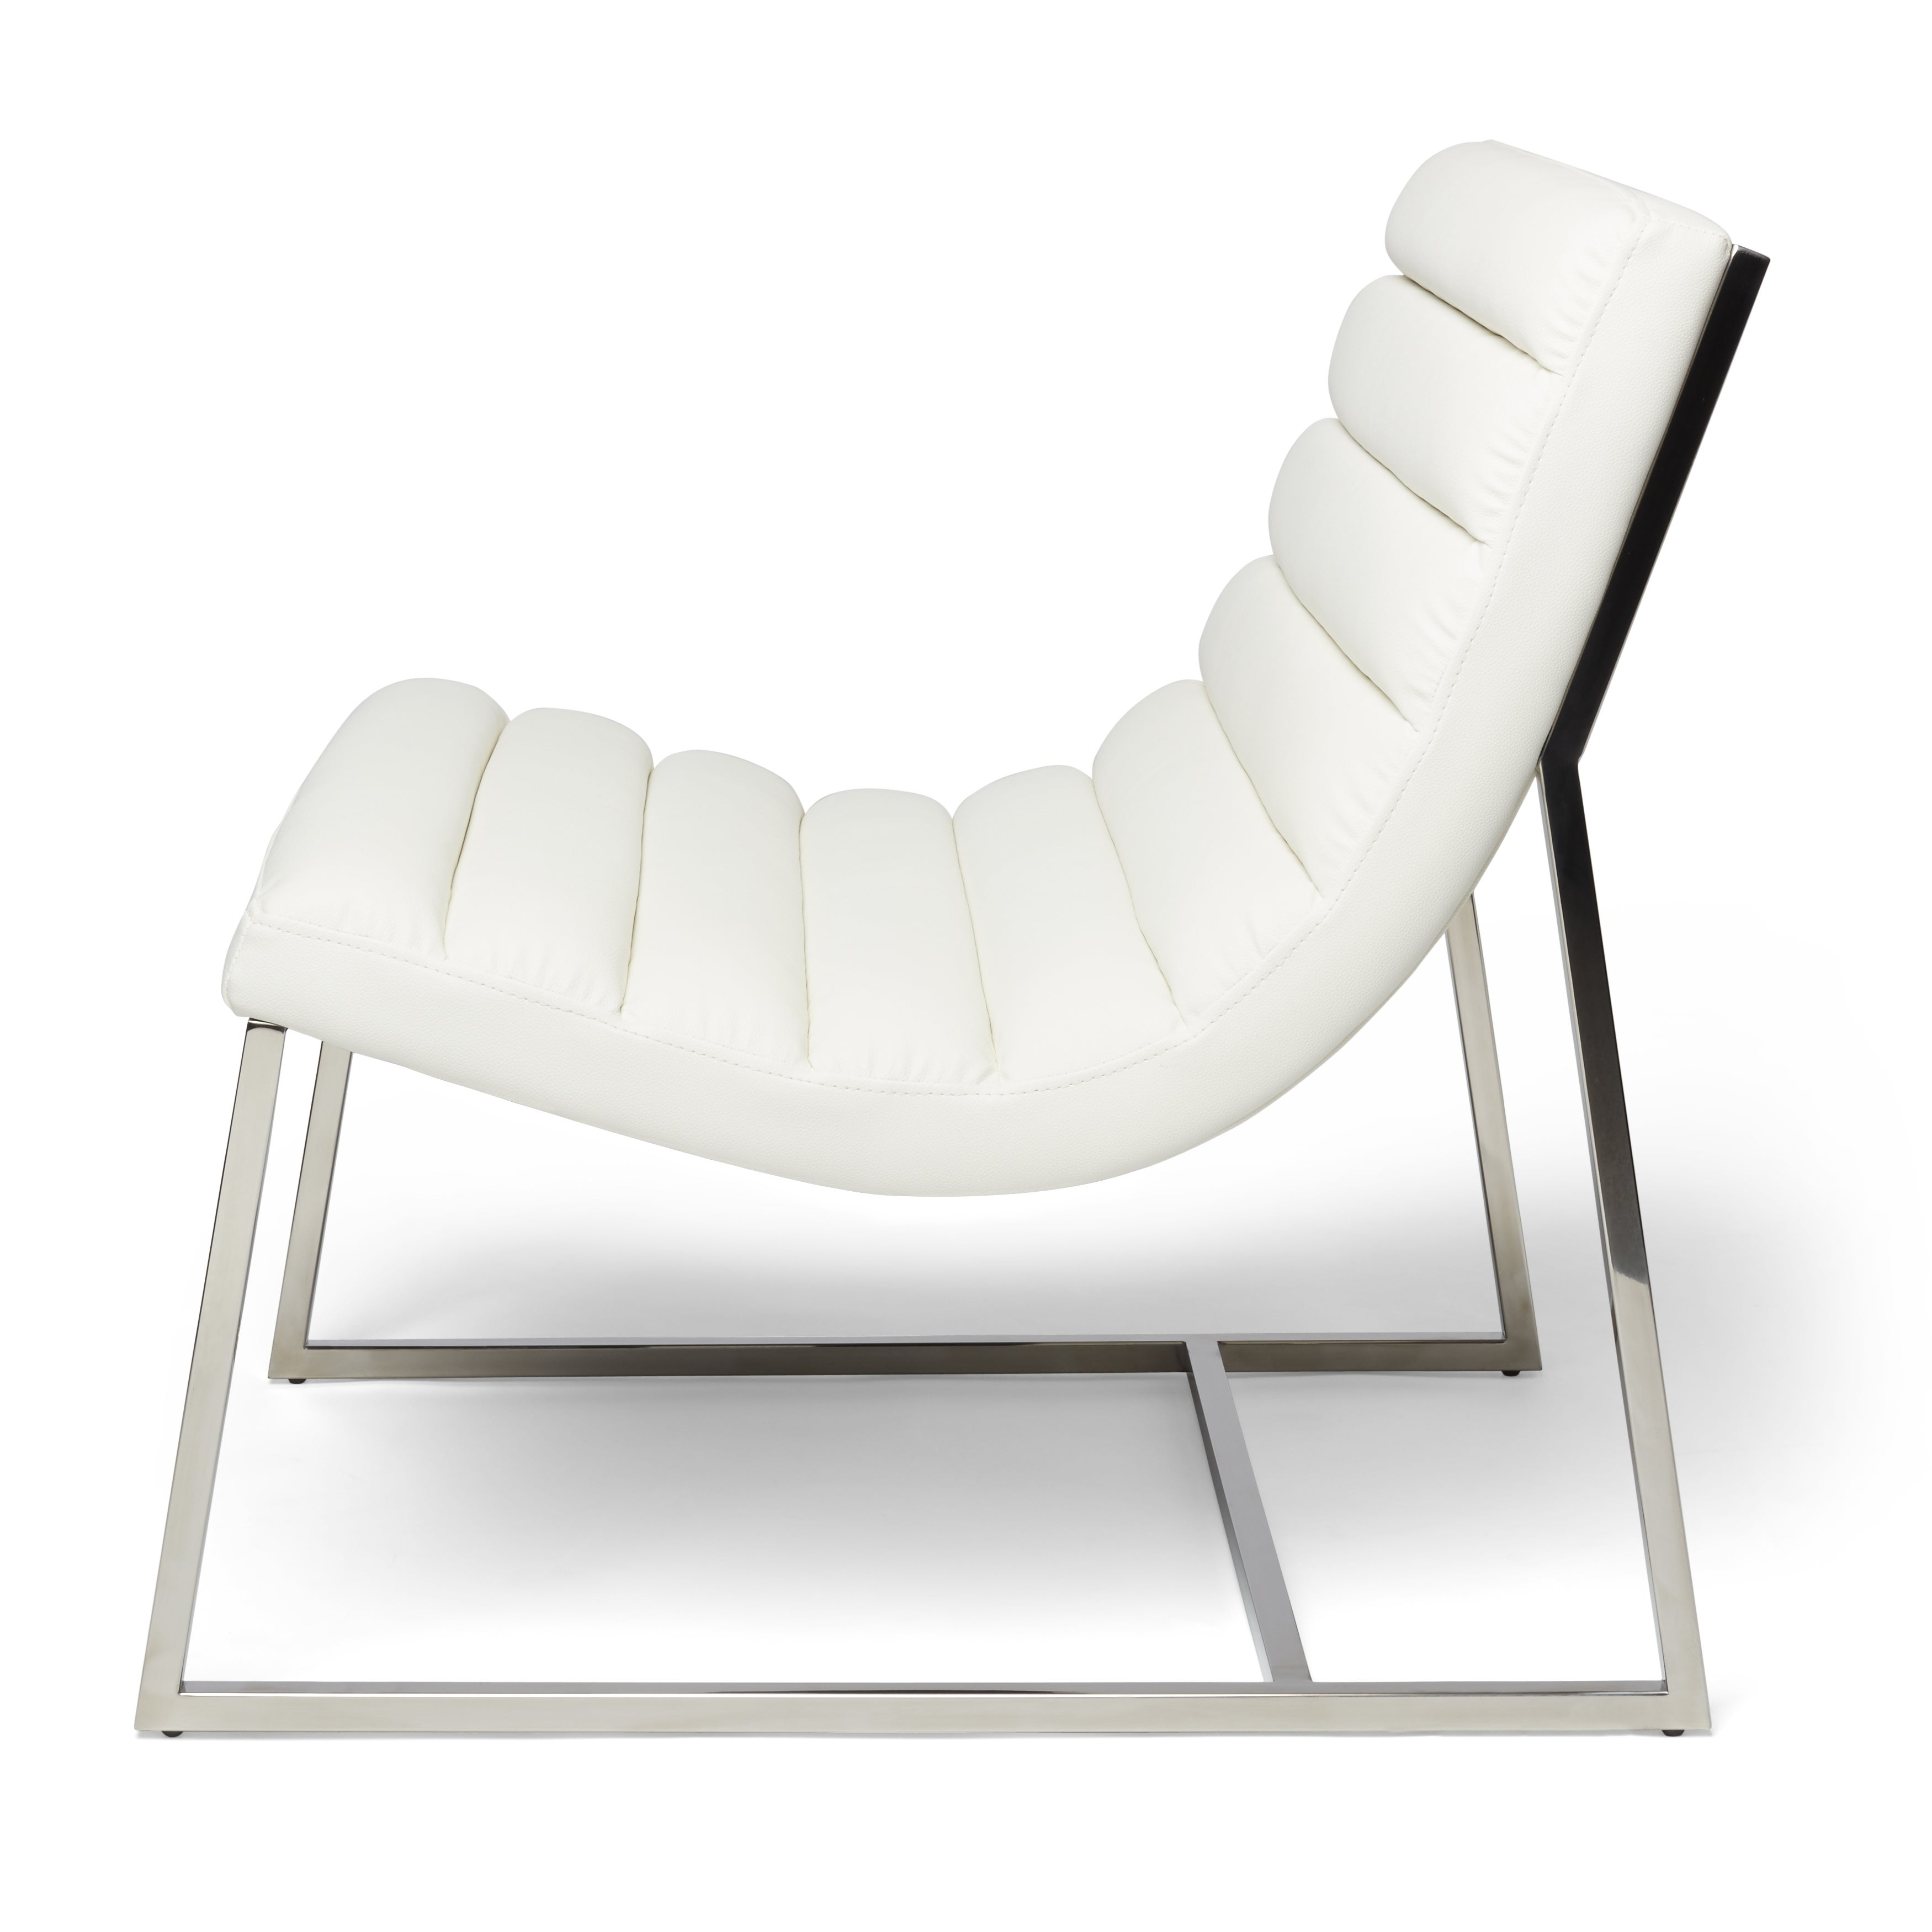 Parisian White Leather Sofa Chair By Christopher Knight Home  ~ Unique White Leather Sofa